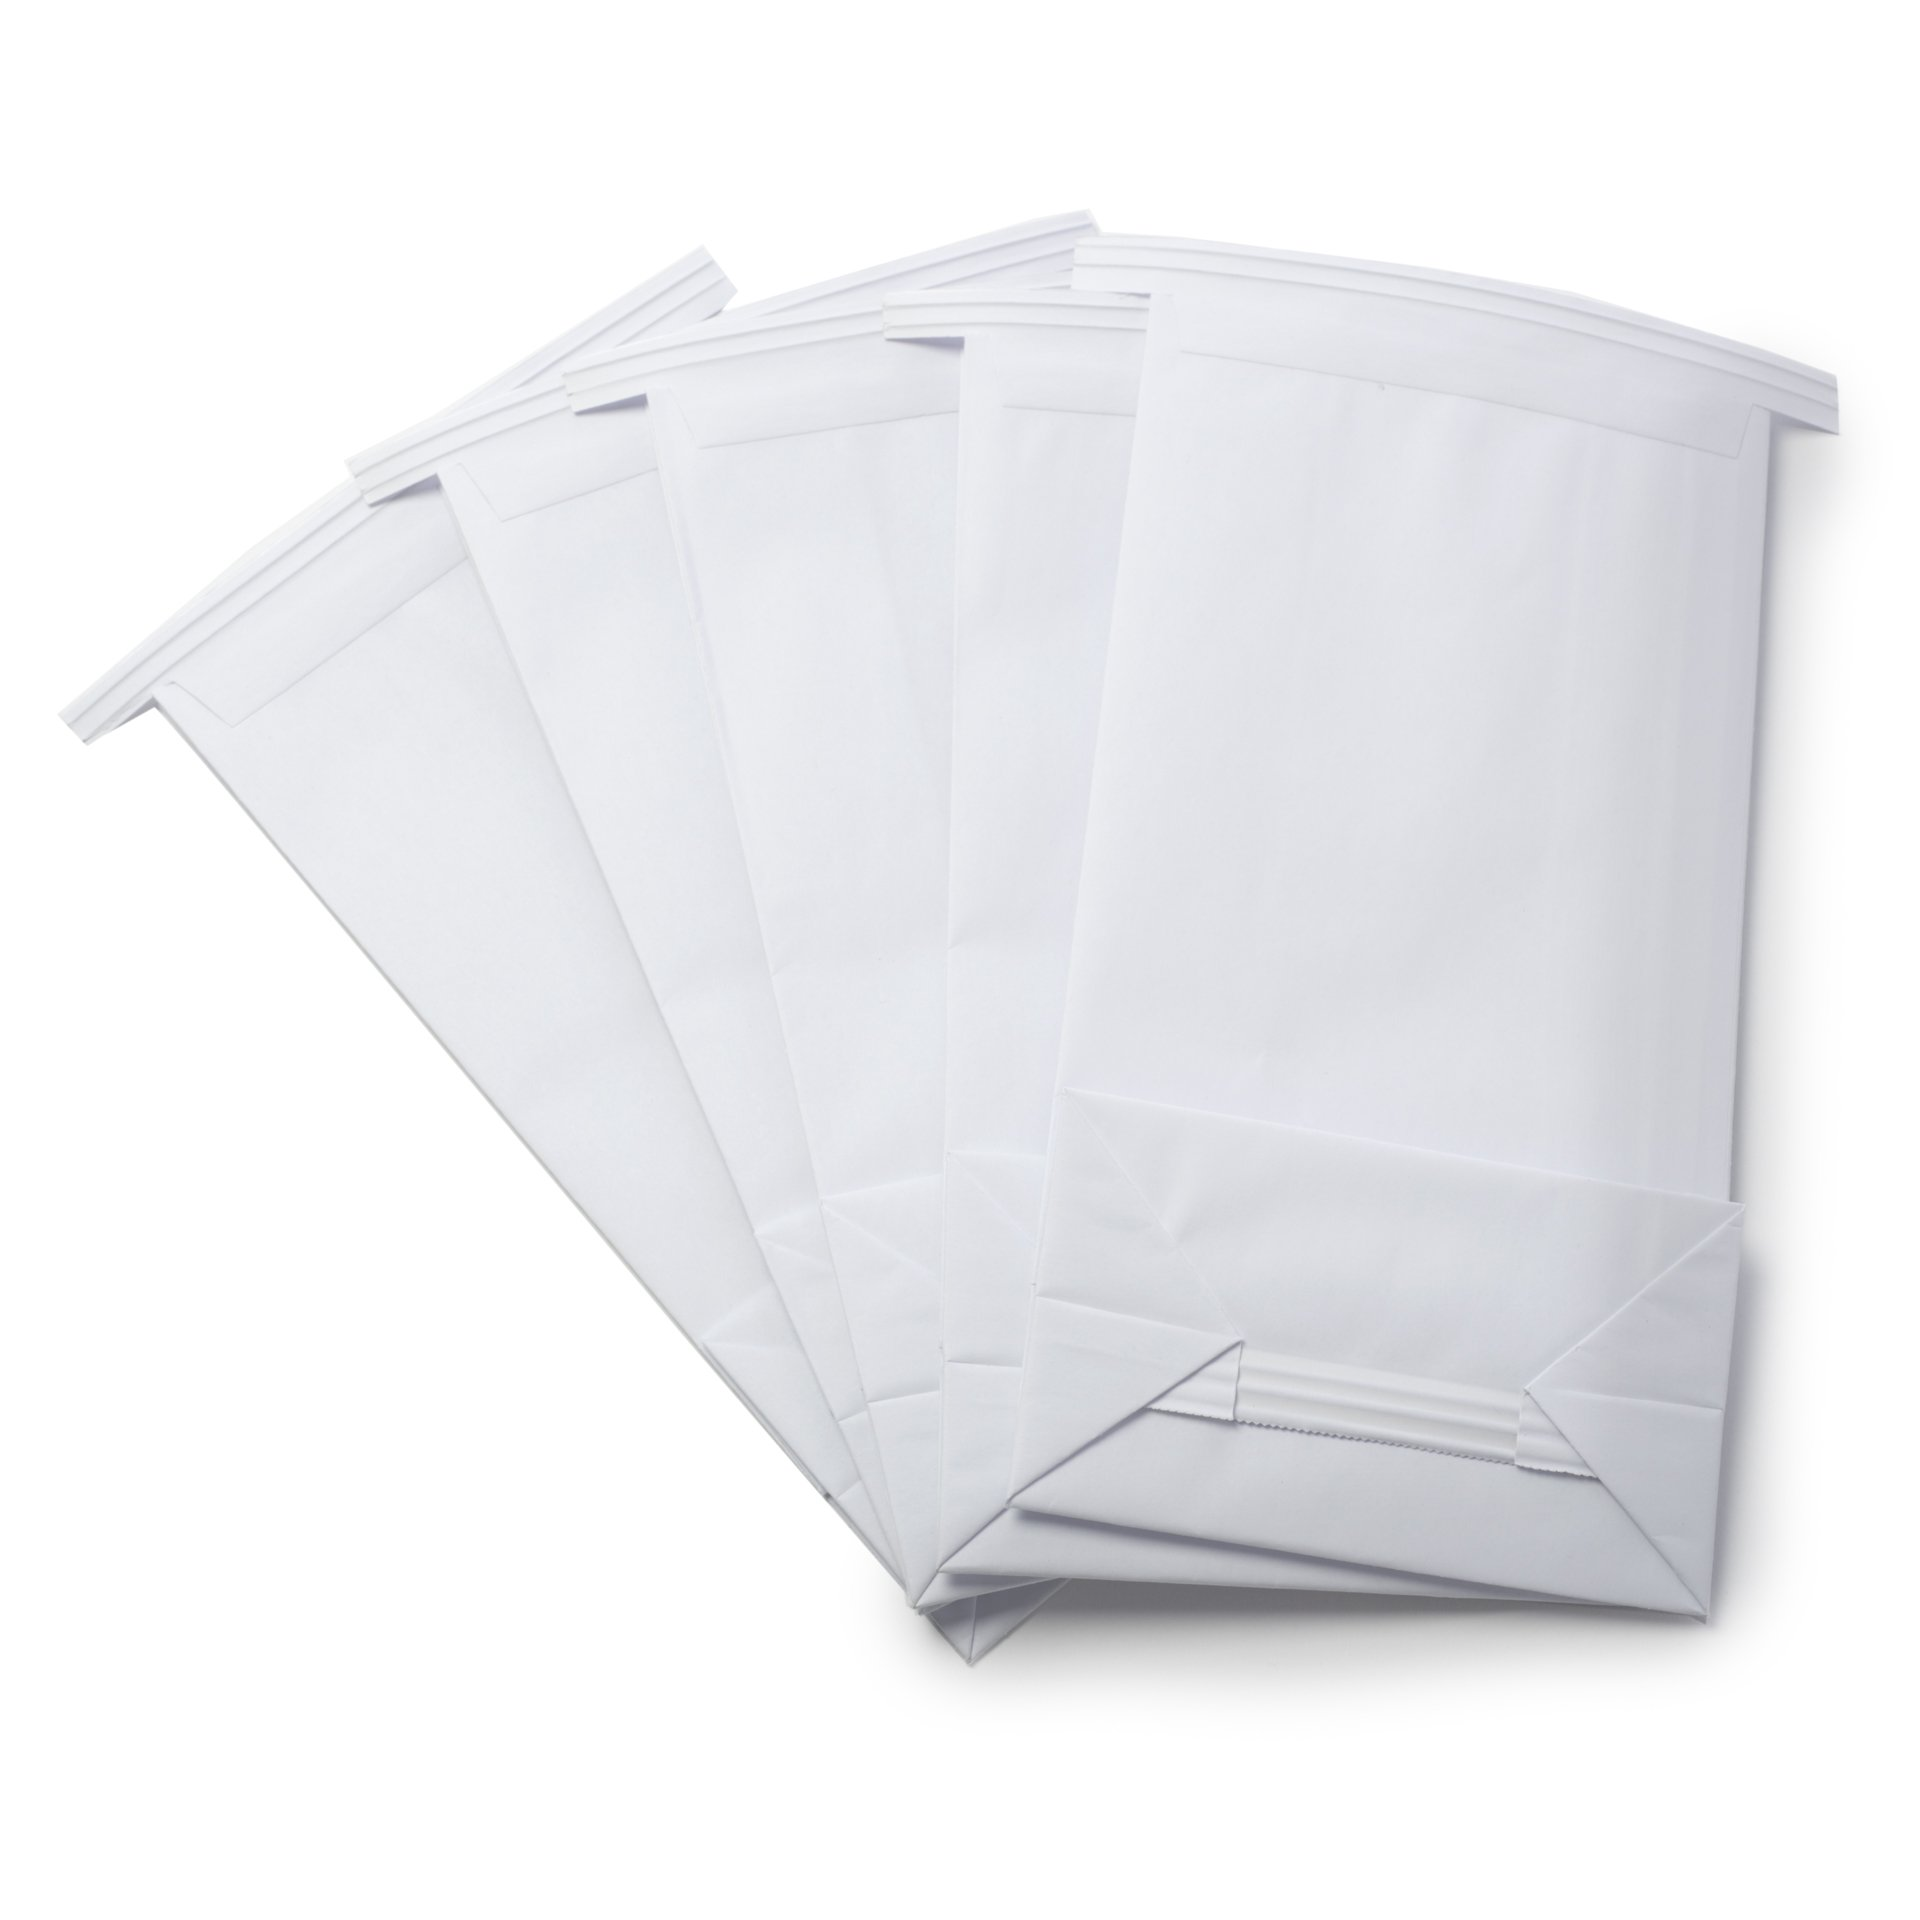 Classic White Vomit/Barf Bags - Travel Motion & Morning Sickness Bags (25/Pk) by The Barf Boutique (Image #4)